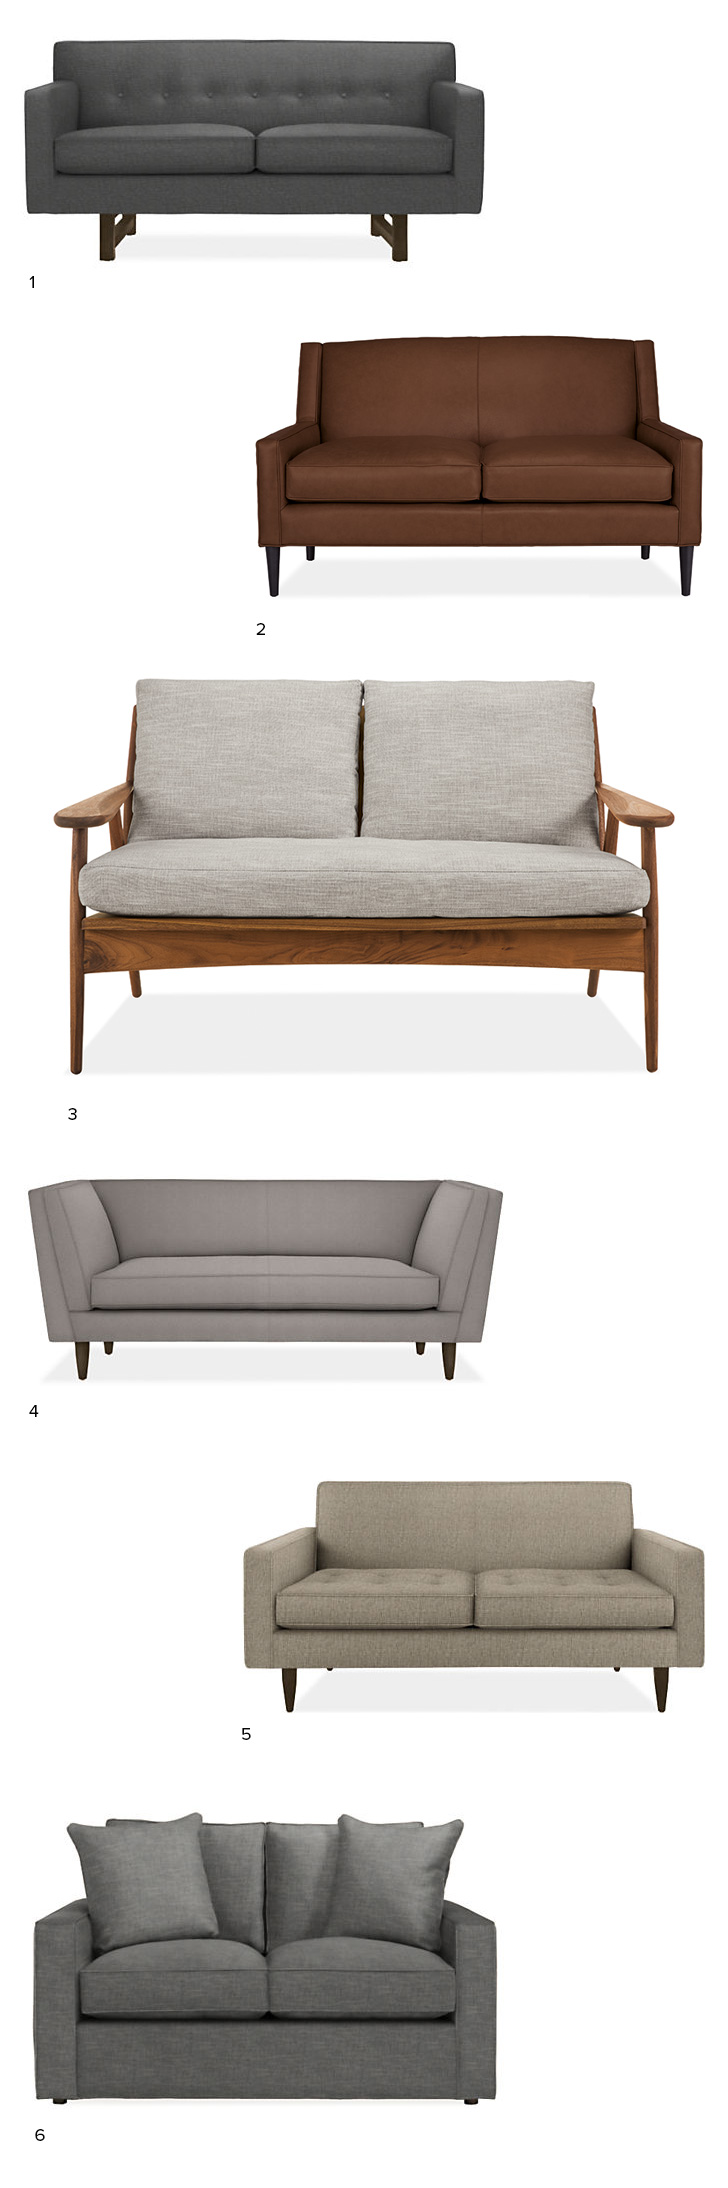 Modern Loveseat Roundup For Small Spaces Room Board